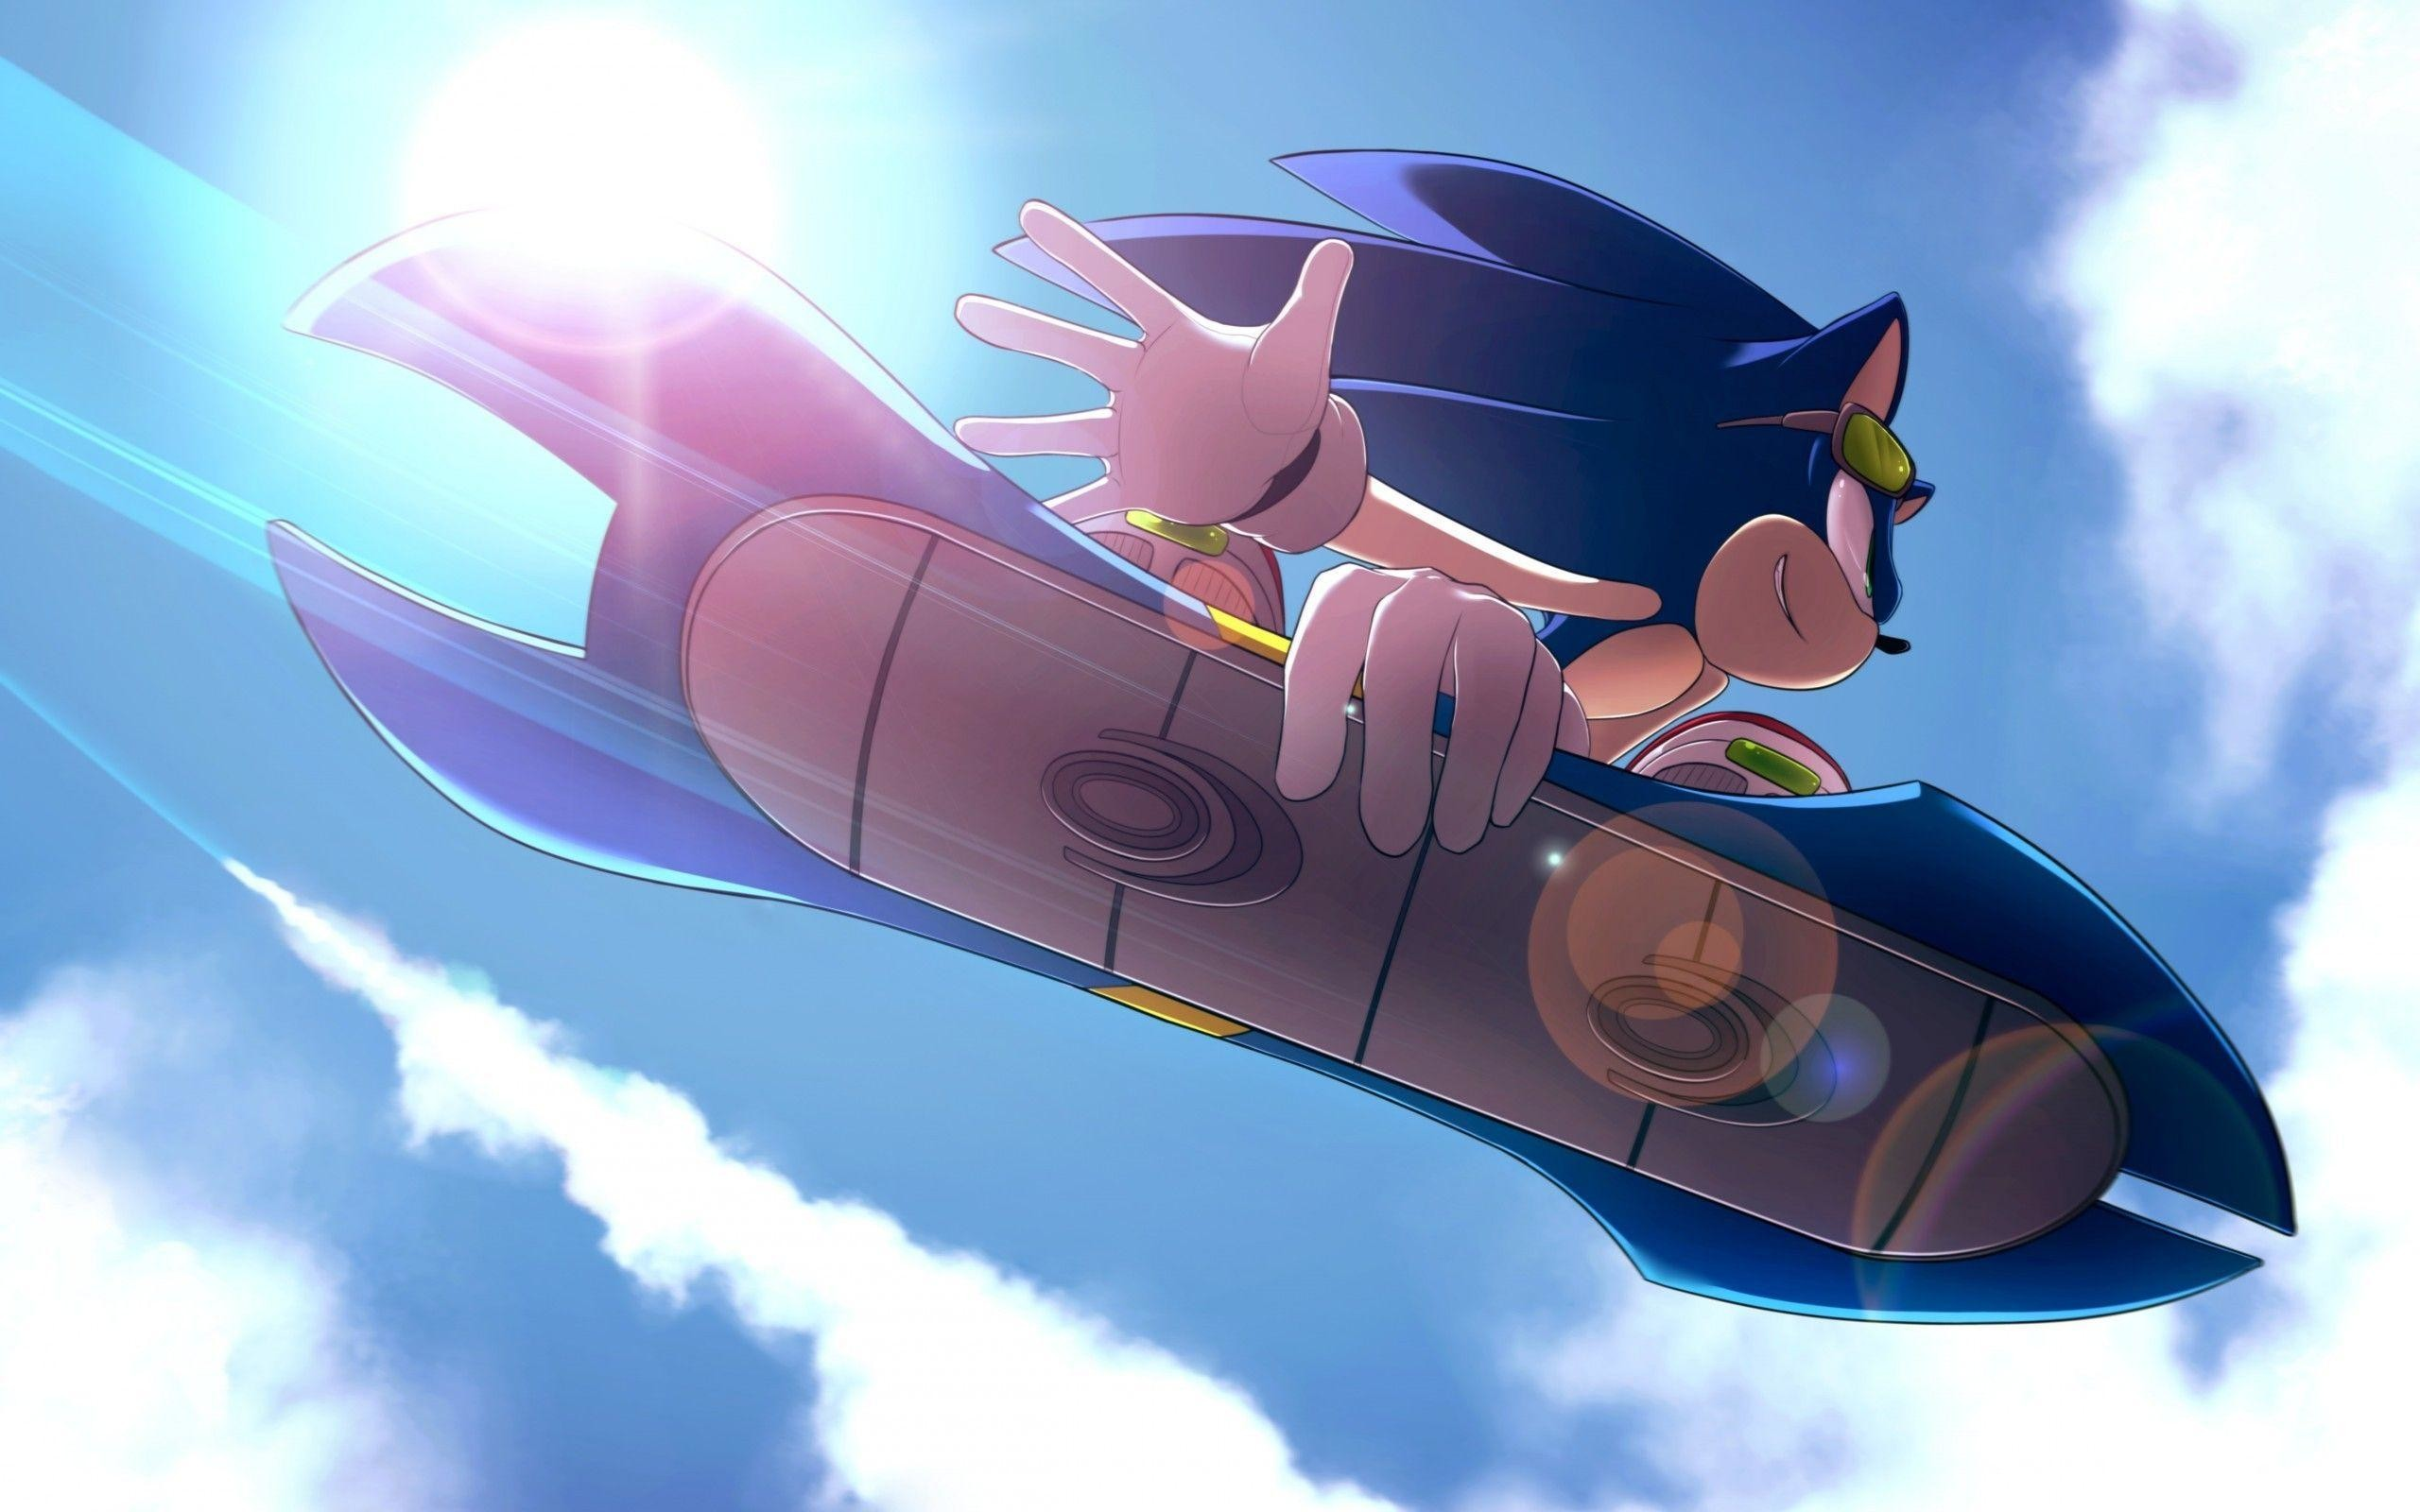 2560x1600 Sonic the Hedgehog, #hoverboard | Wallpaper No. 149354 - wallhaven.cc